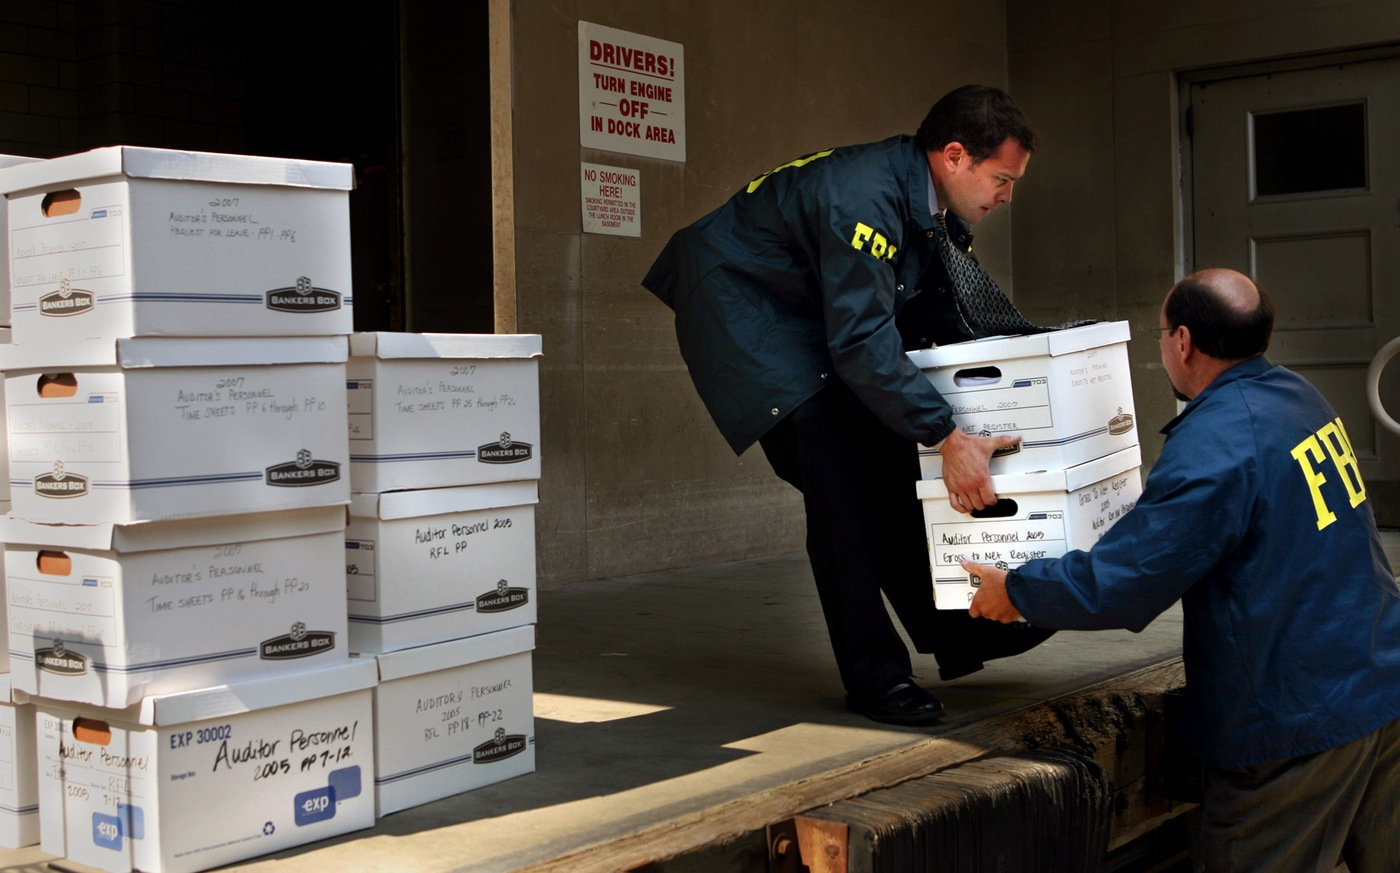 FBI agents load boxes confiscated from offices in the Cuyahoga County Administration Building into a truck. The FBI and IRS raided the building and other locations in the Cleveland area as part of a corruption probe.